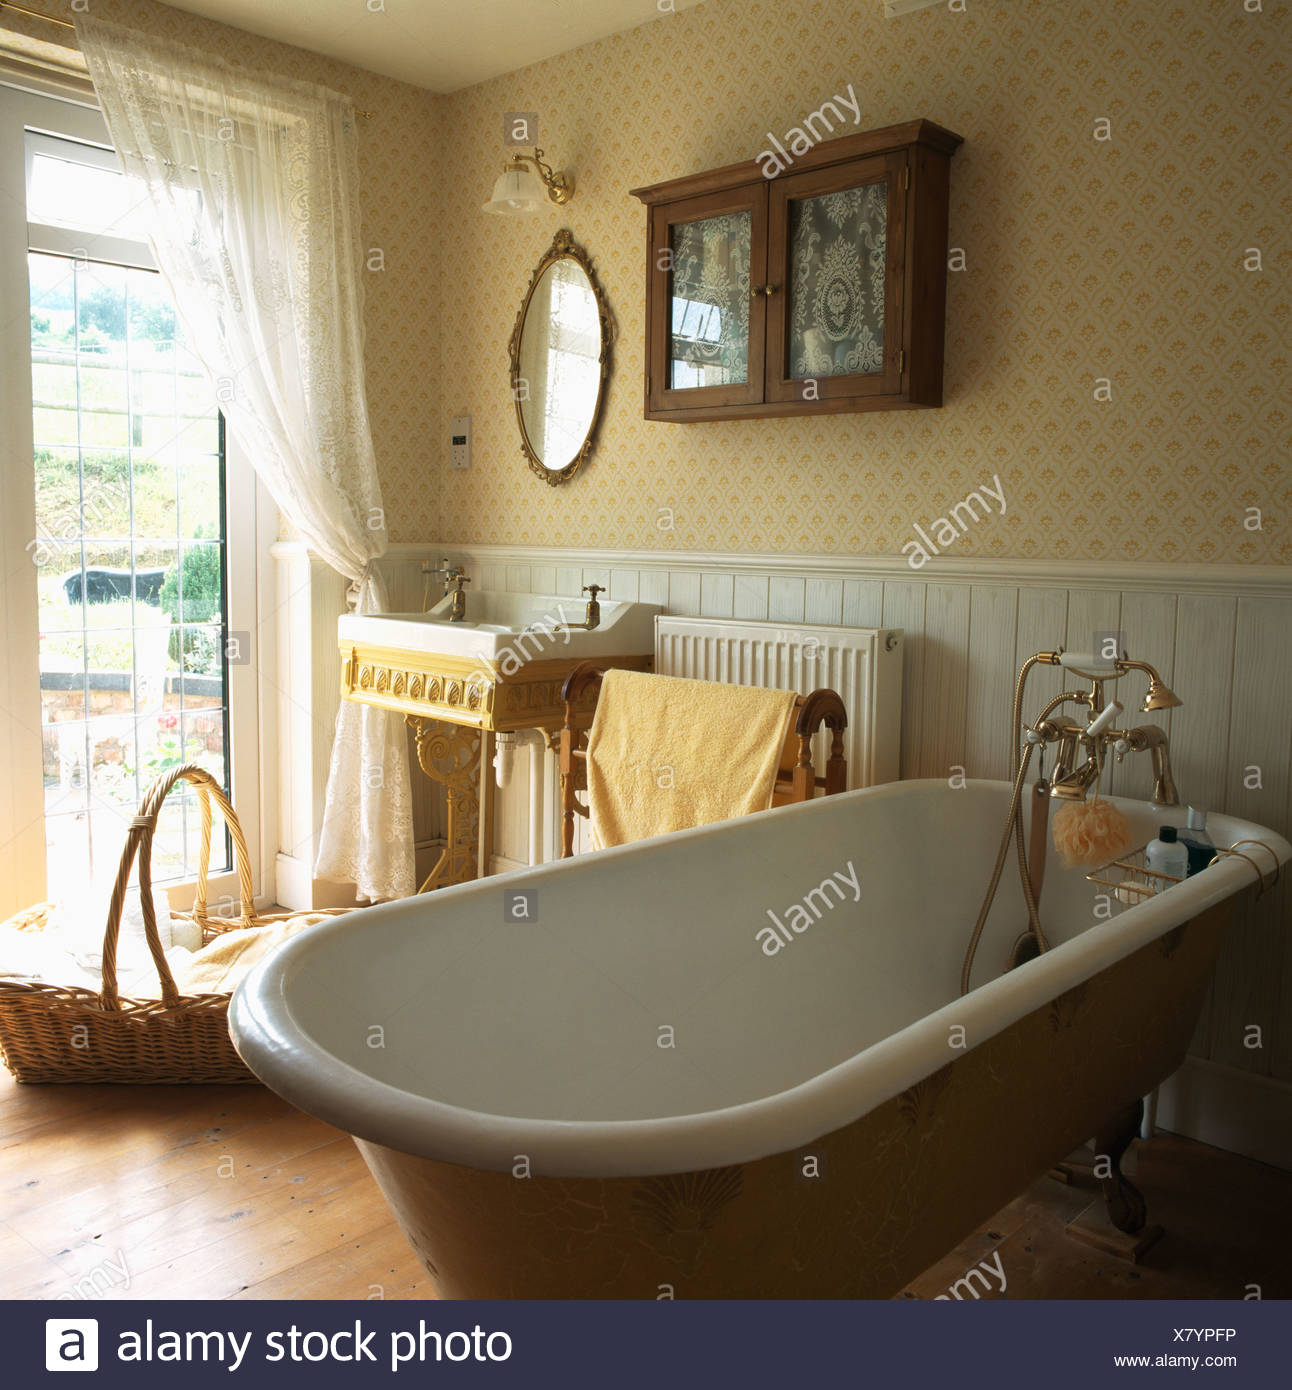 Patterned Wallpaper And Roll Top Bath In Traditional Bathroom With Old  Basin Beside French Windows With White Voile Curtains